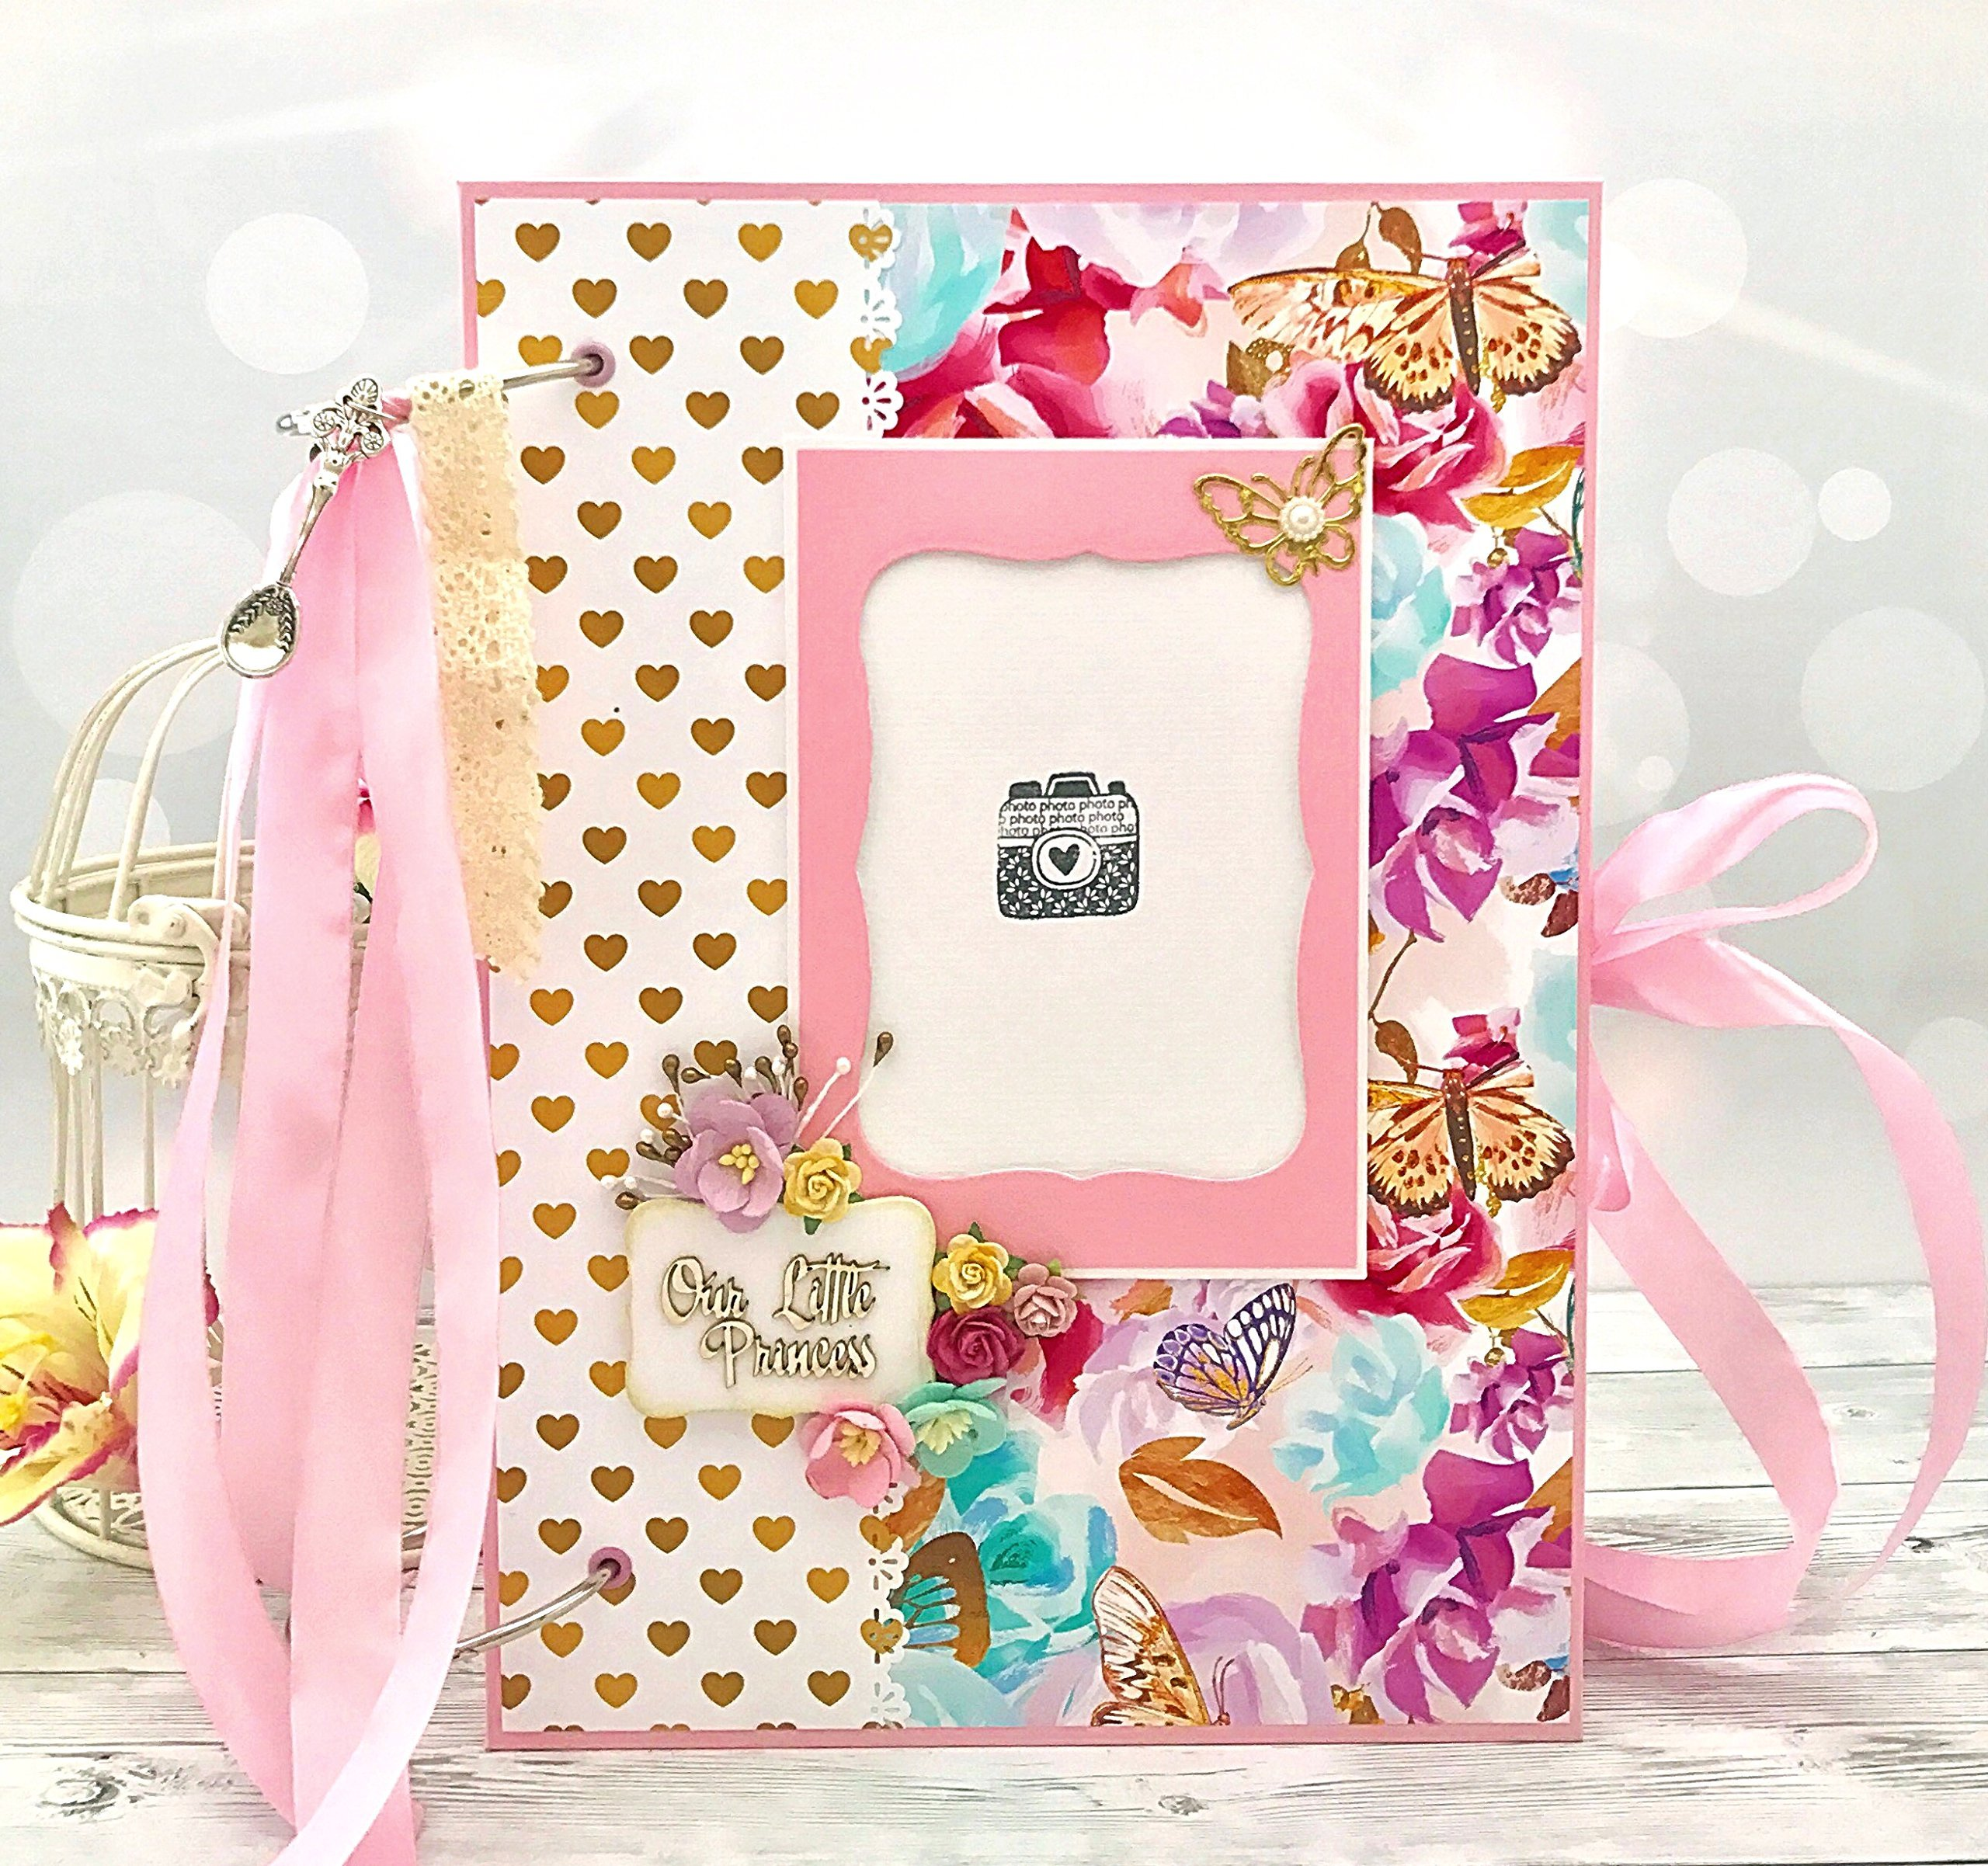 Kristabella Creations Butterfly Baby girl memory book, size A4 8x11 inches, Metal ring binding, 20 decorated inside pages, Interactive, Month cards, Milestone card, Beautiful baby shower gift